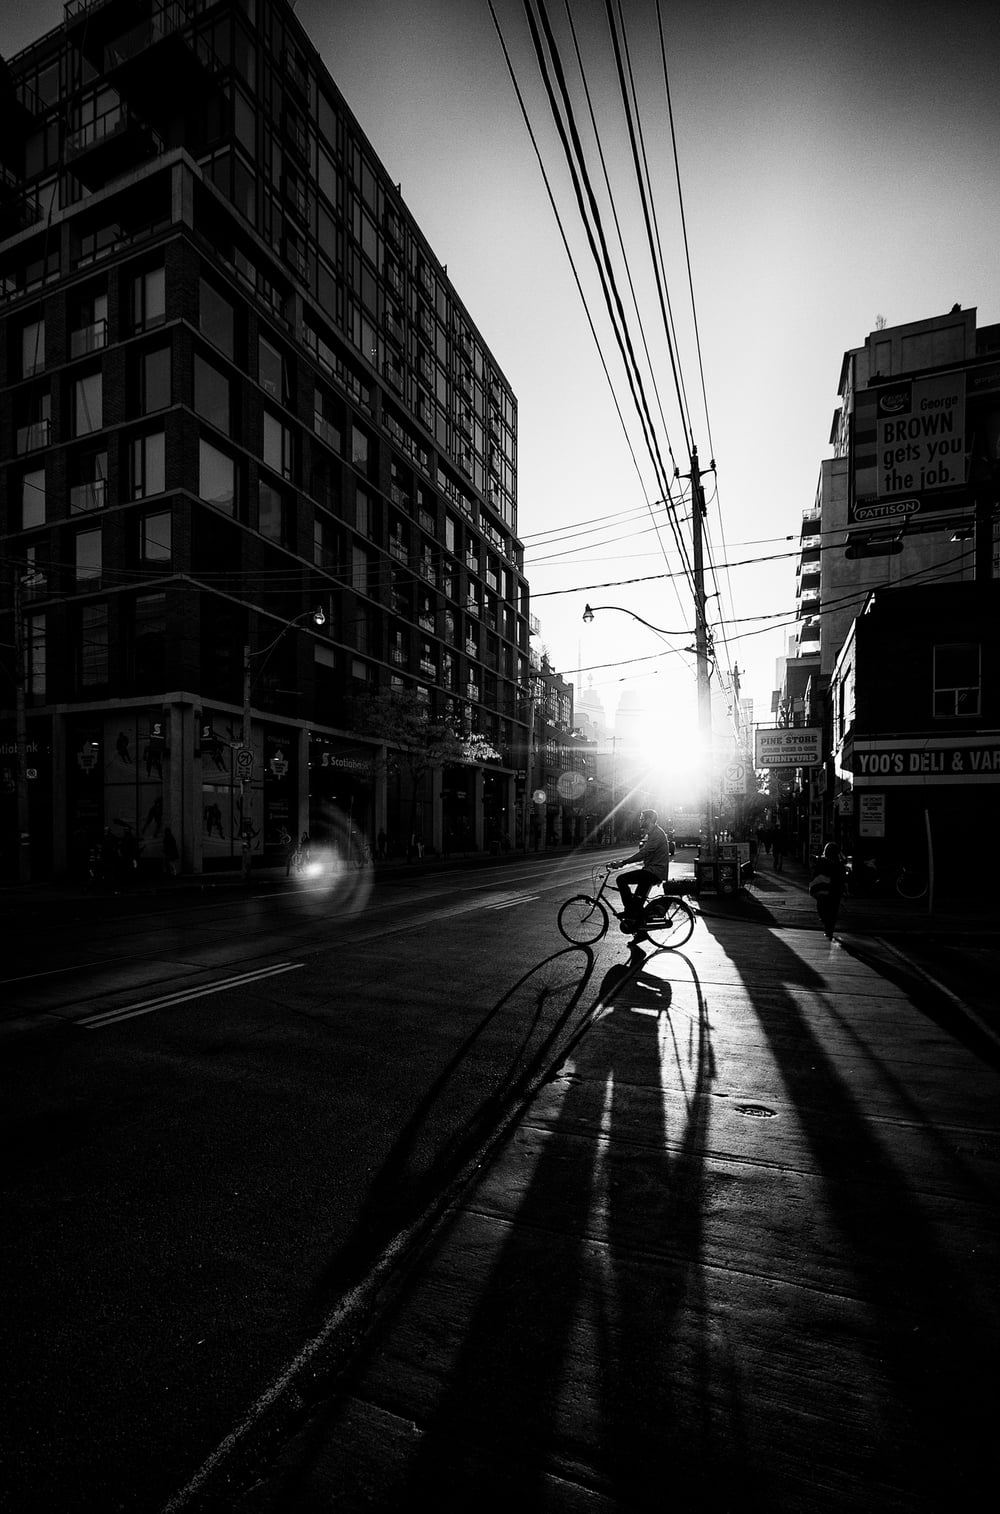 cyclist-shadow_torontohendge_highcon_bw_01.jpg